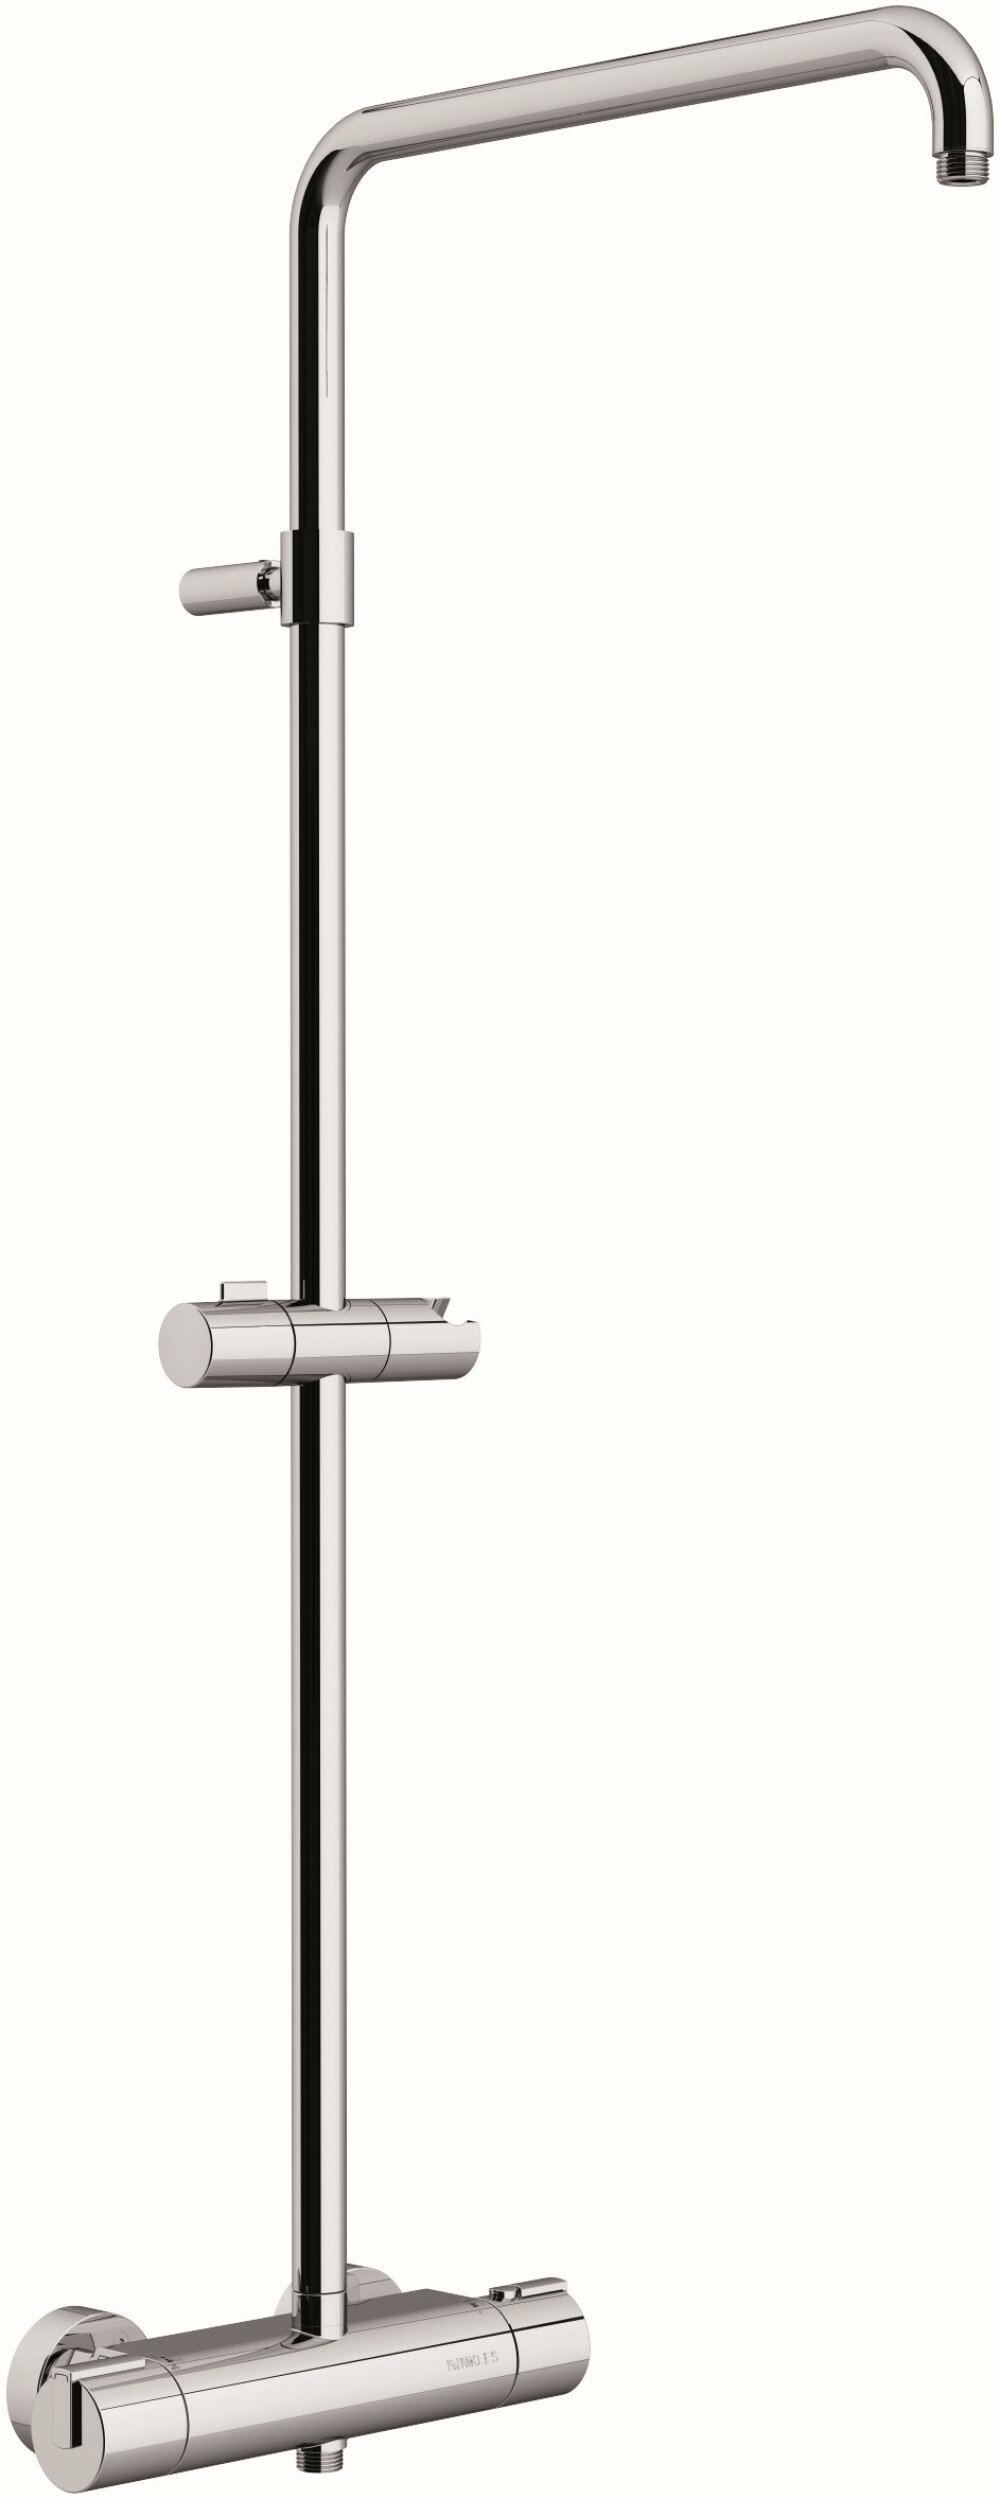 Nikles Techno Thermostatic Complete Shower System With Rough In Valve Wayfair